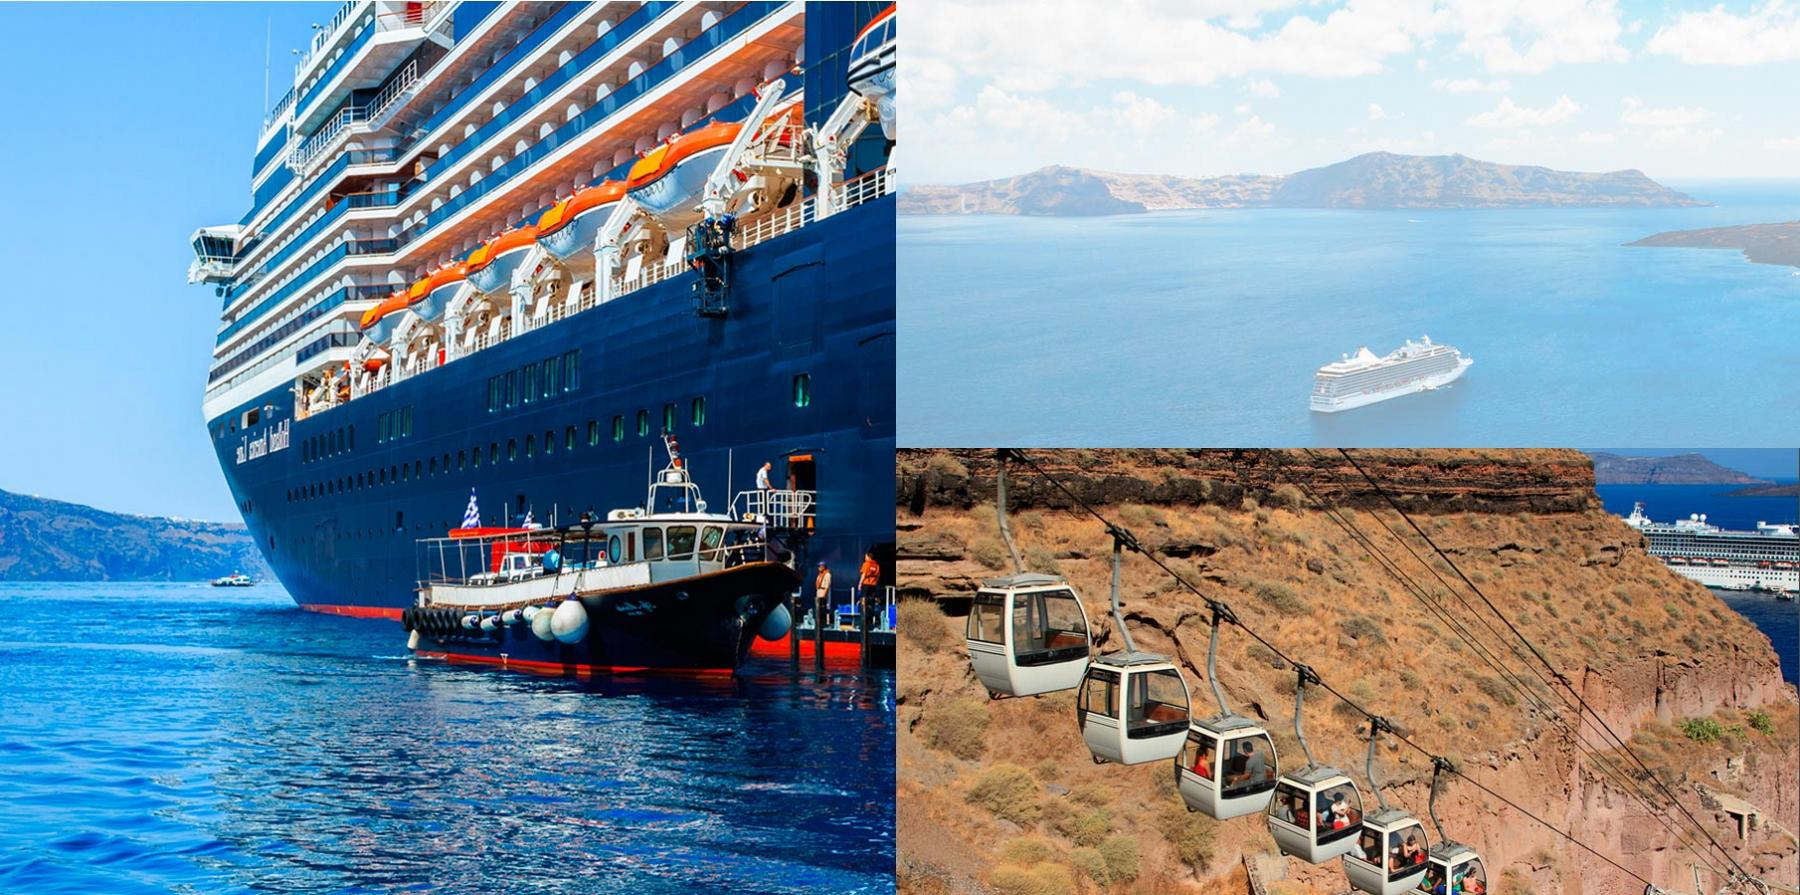 Santorini Day Cruise